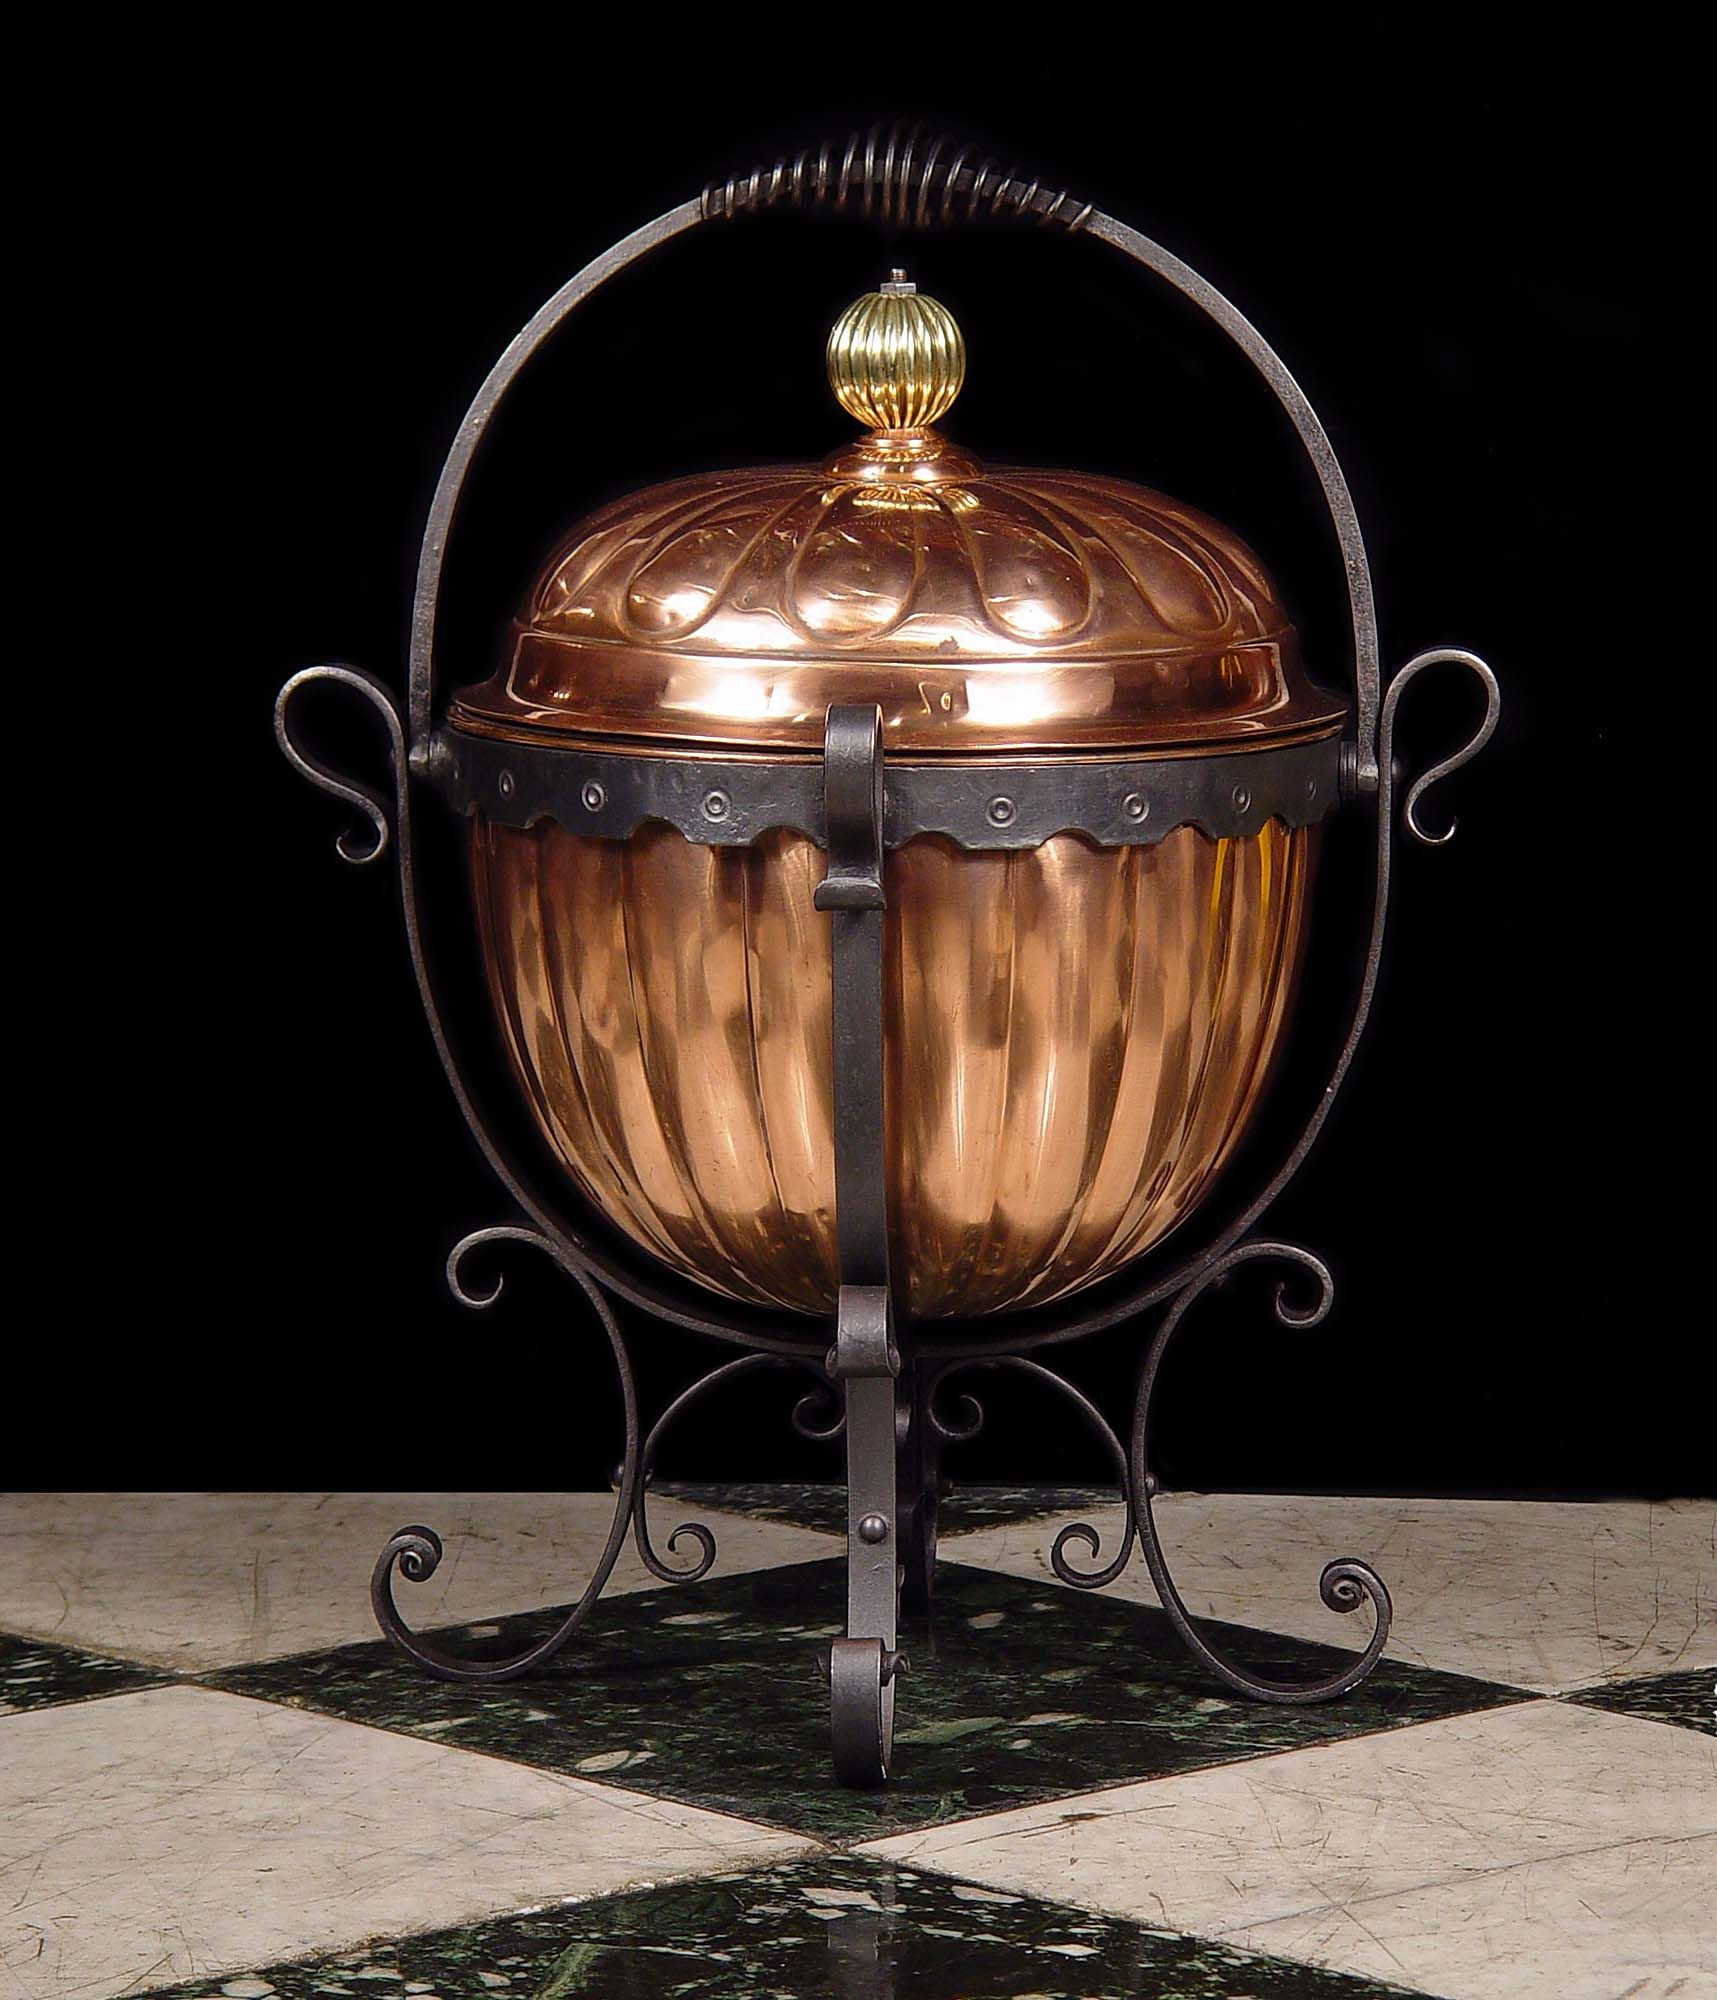 Antique copper fireplace mantel coal log bin.